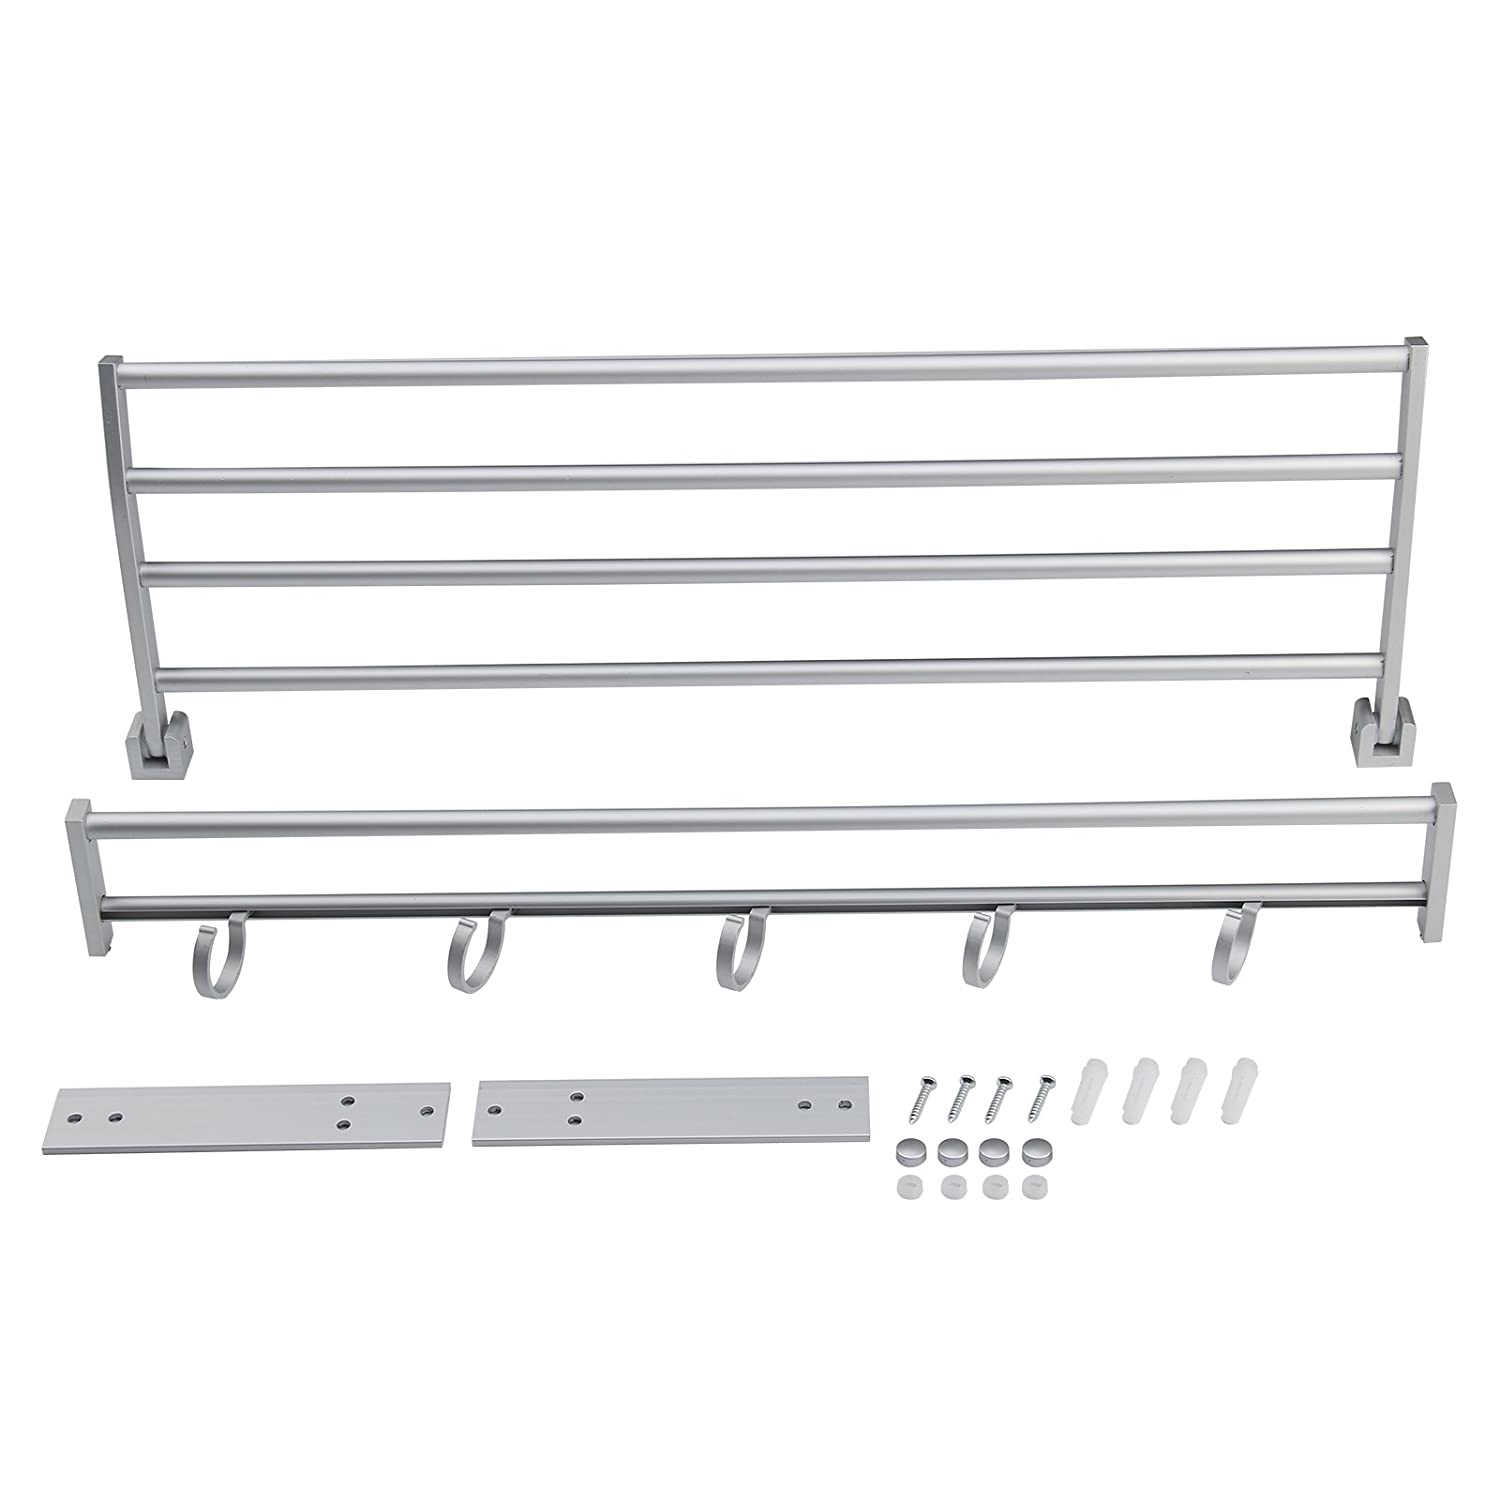 MultiWare Towel Rall Modern Double Wall Mounted Bathroom Bath Towel Rails Holder Storage Rack Shelf OEM